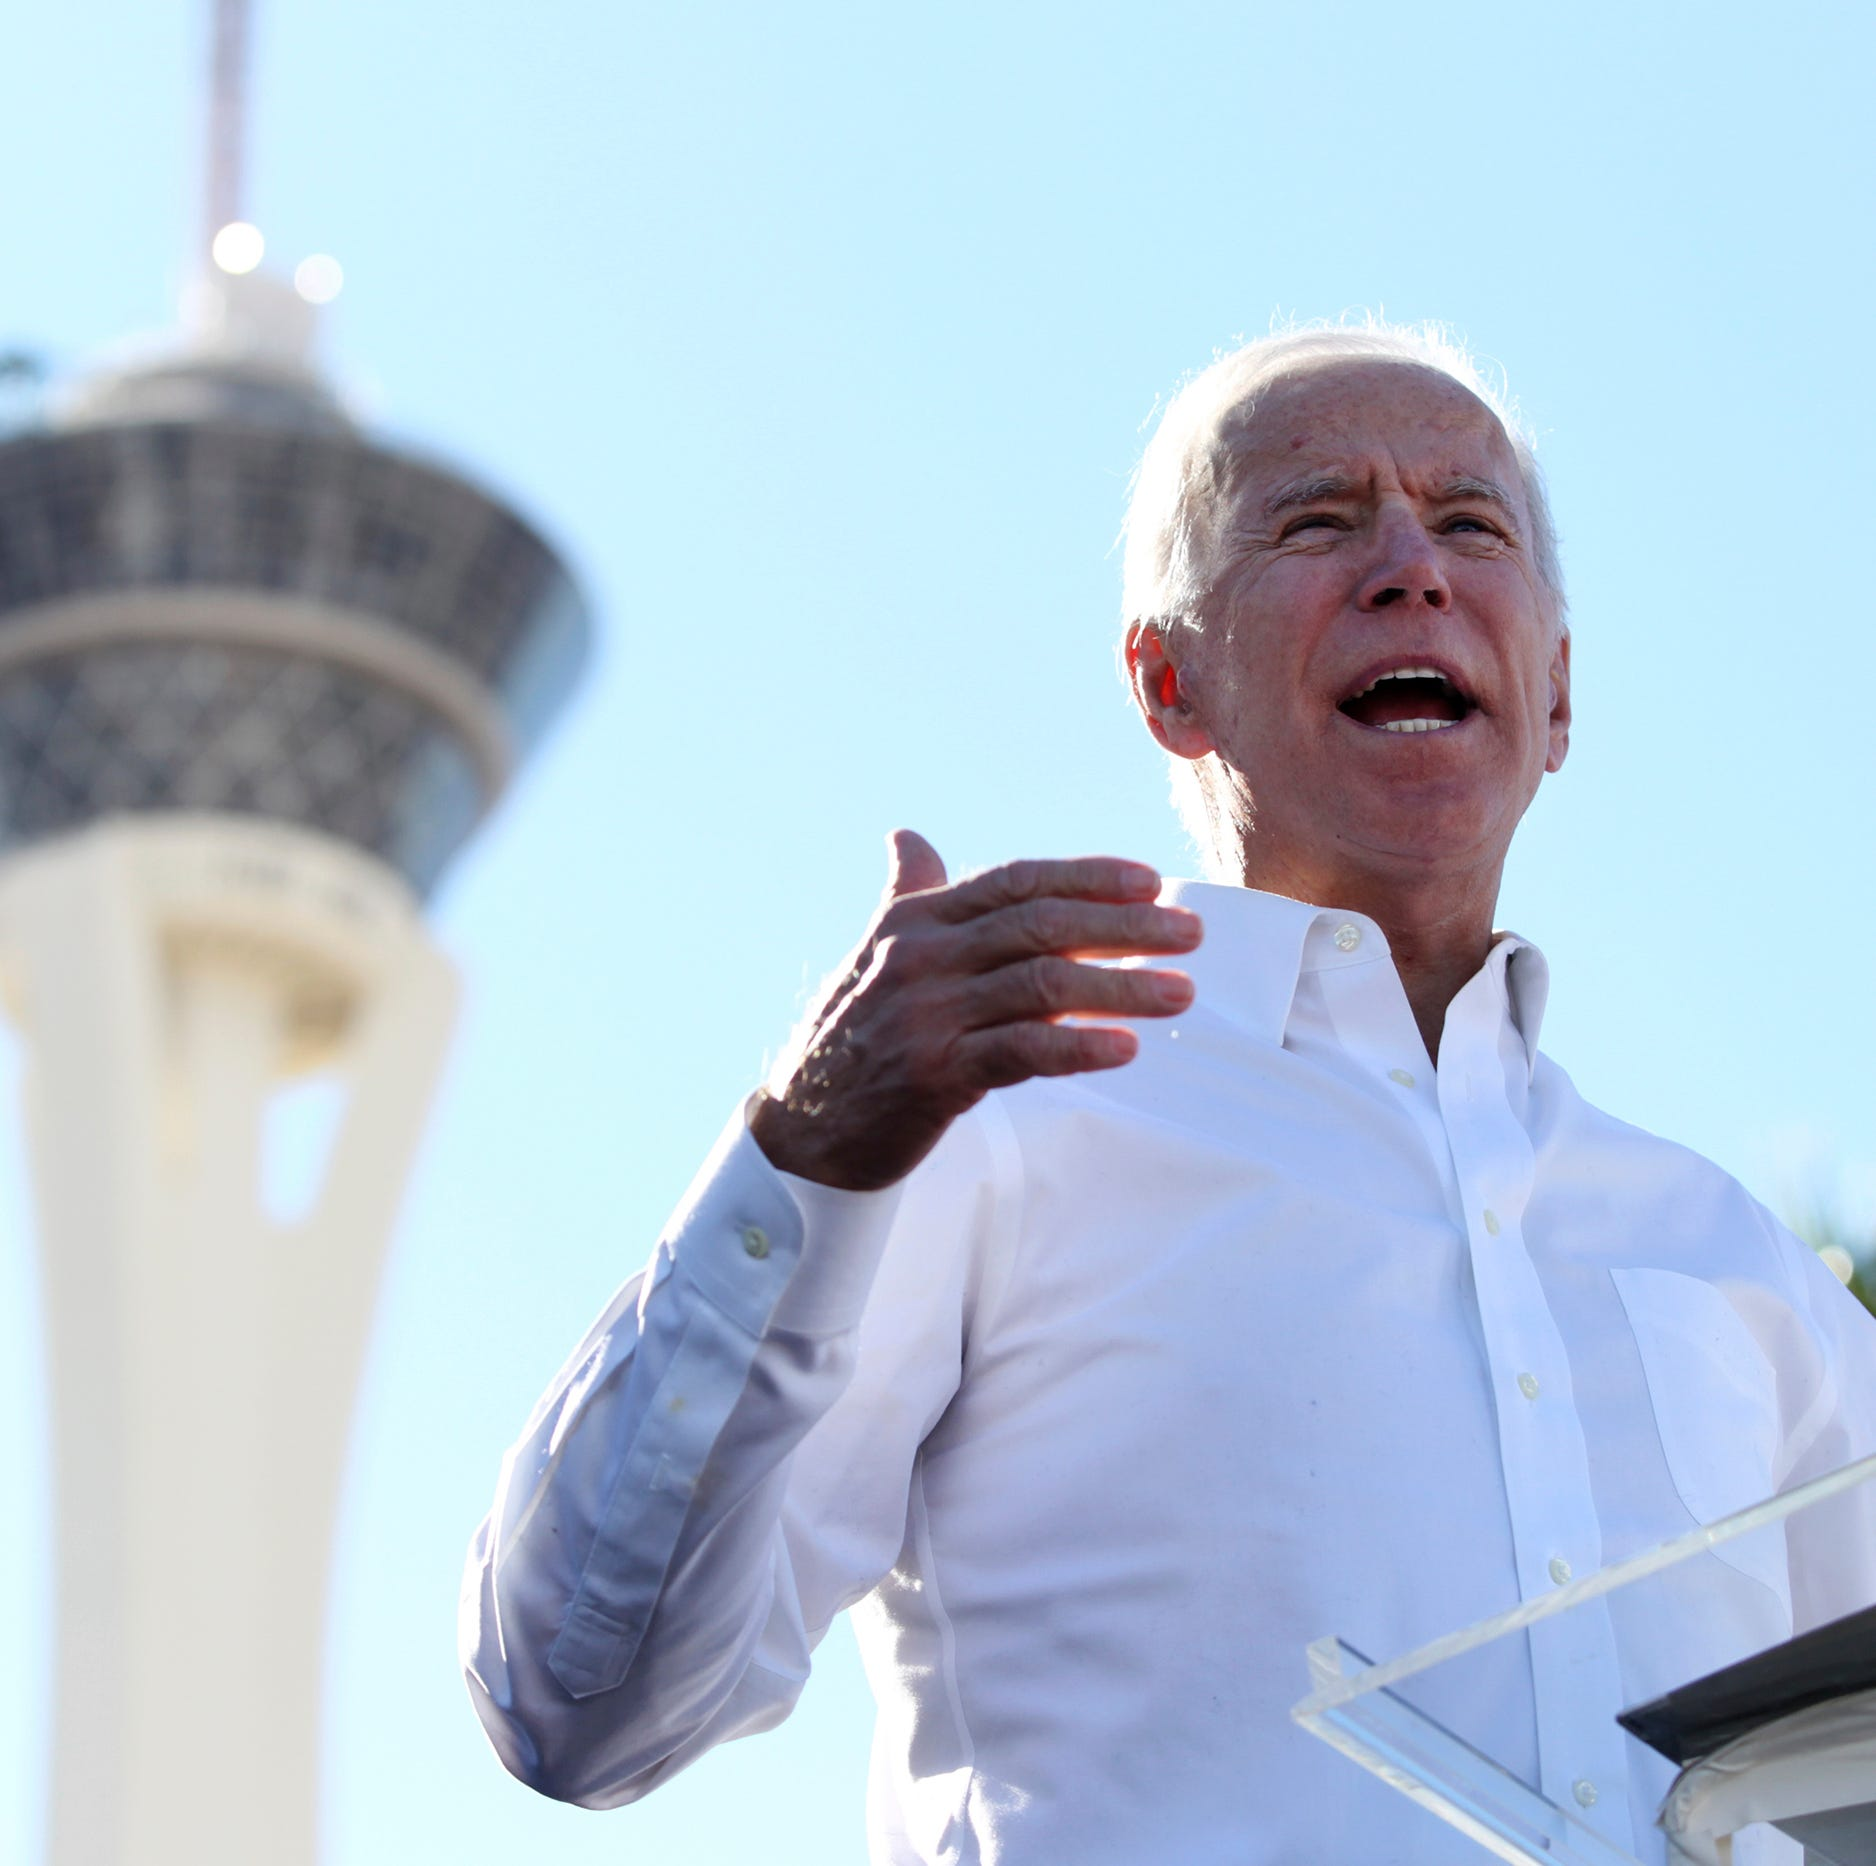 Biden campaigns for Nevada Democrats at Las Vegas rally on Saturday